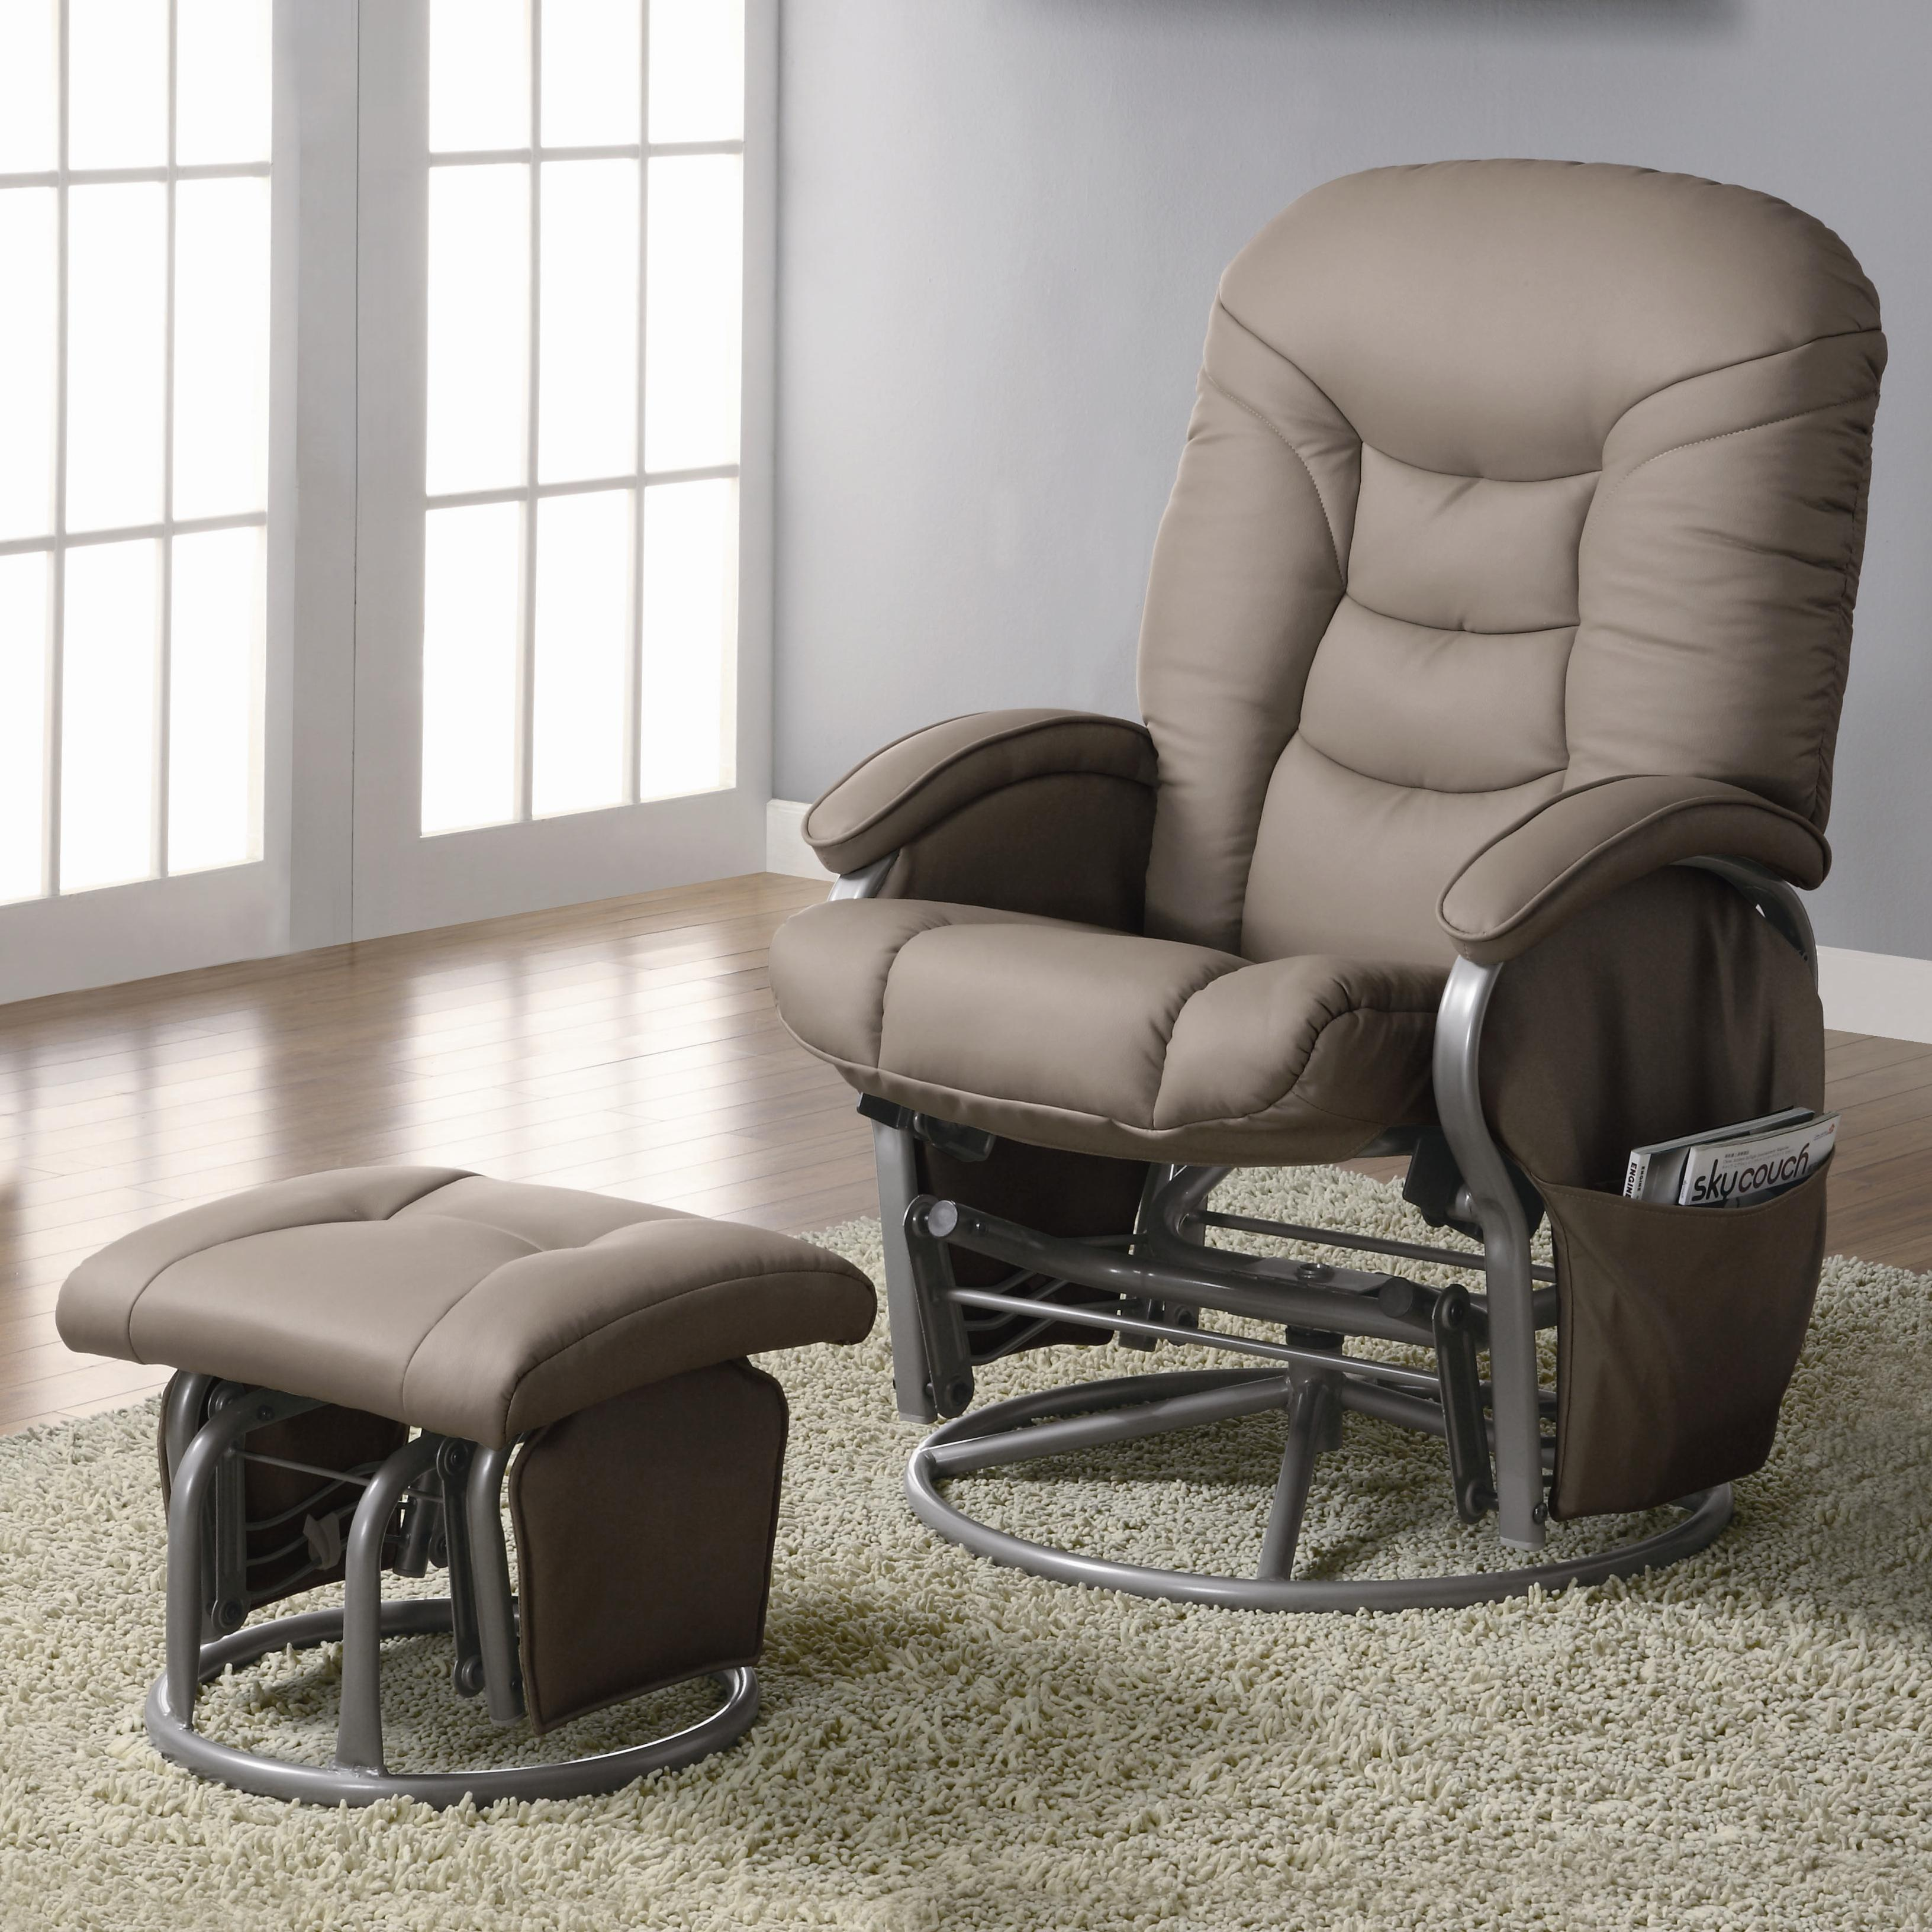 Ordinaire Coaster Recliners With Ottomans Glider Recliner With Ottoman   Item Number:  600228